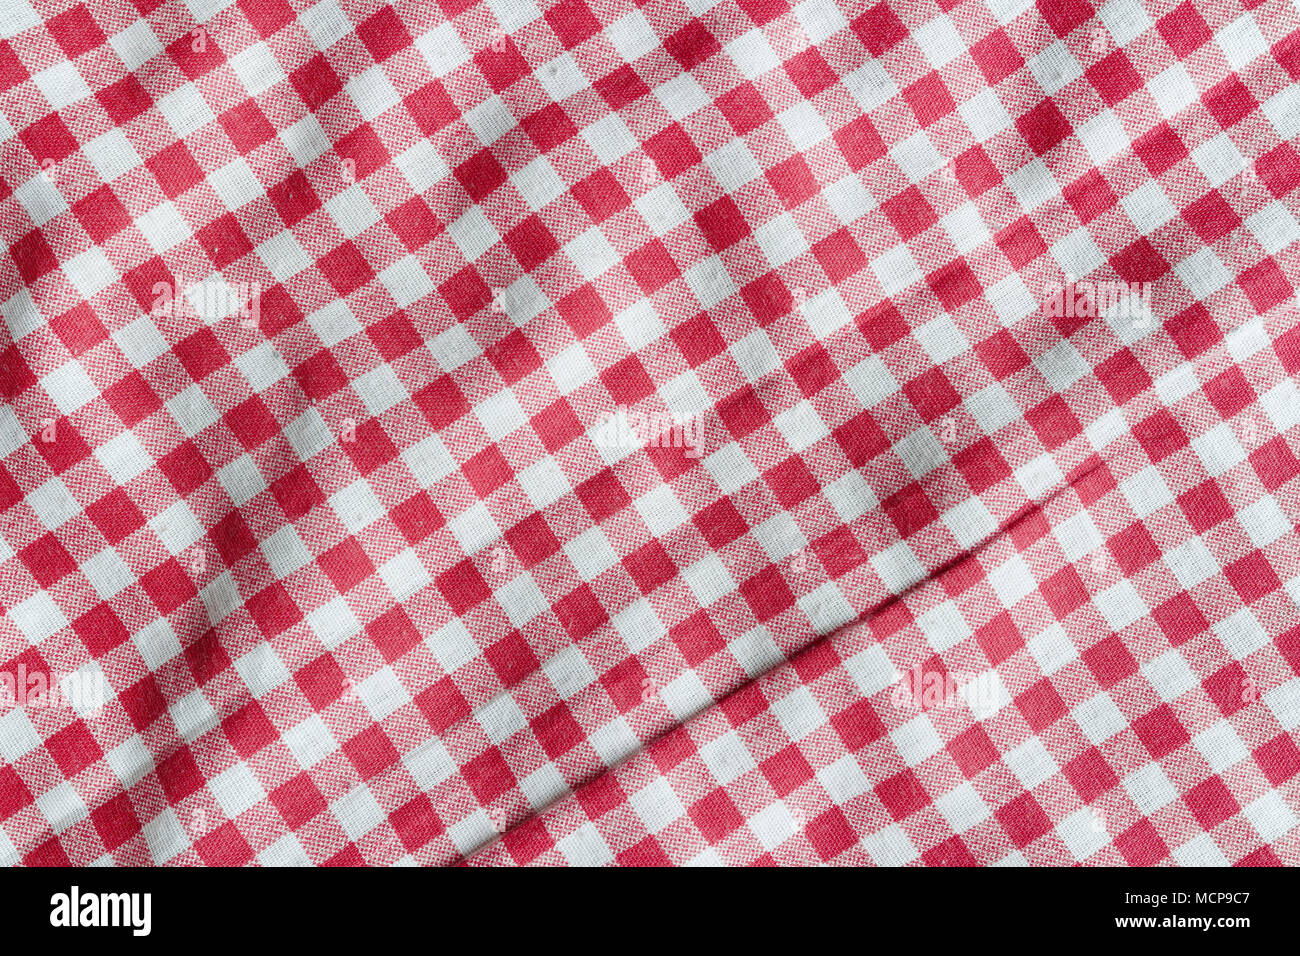 42a83cd79e9 Red linen picnic tablecloth. Texture of a red and white checkered picnic  blanket.